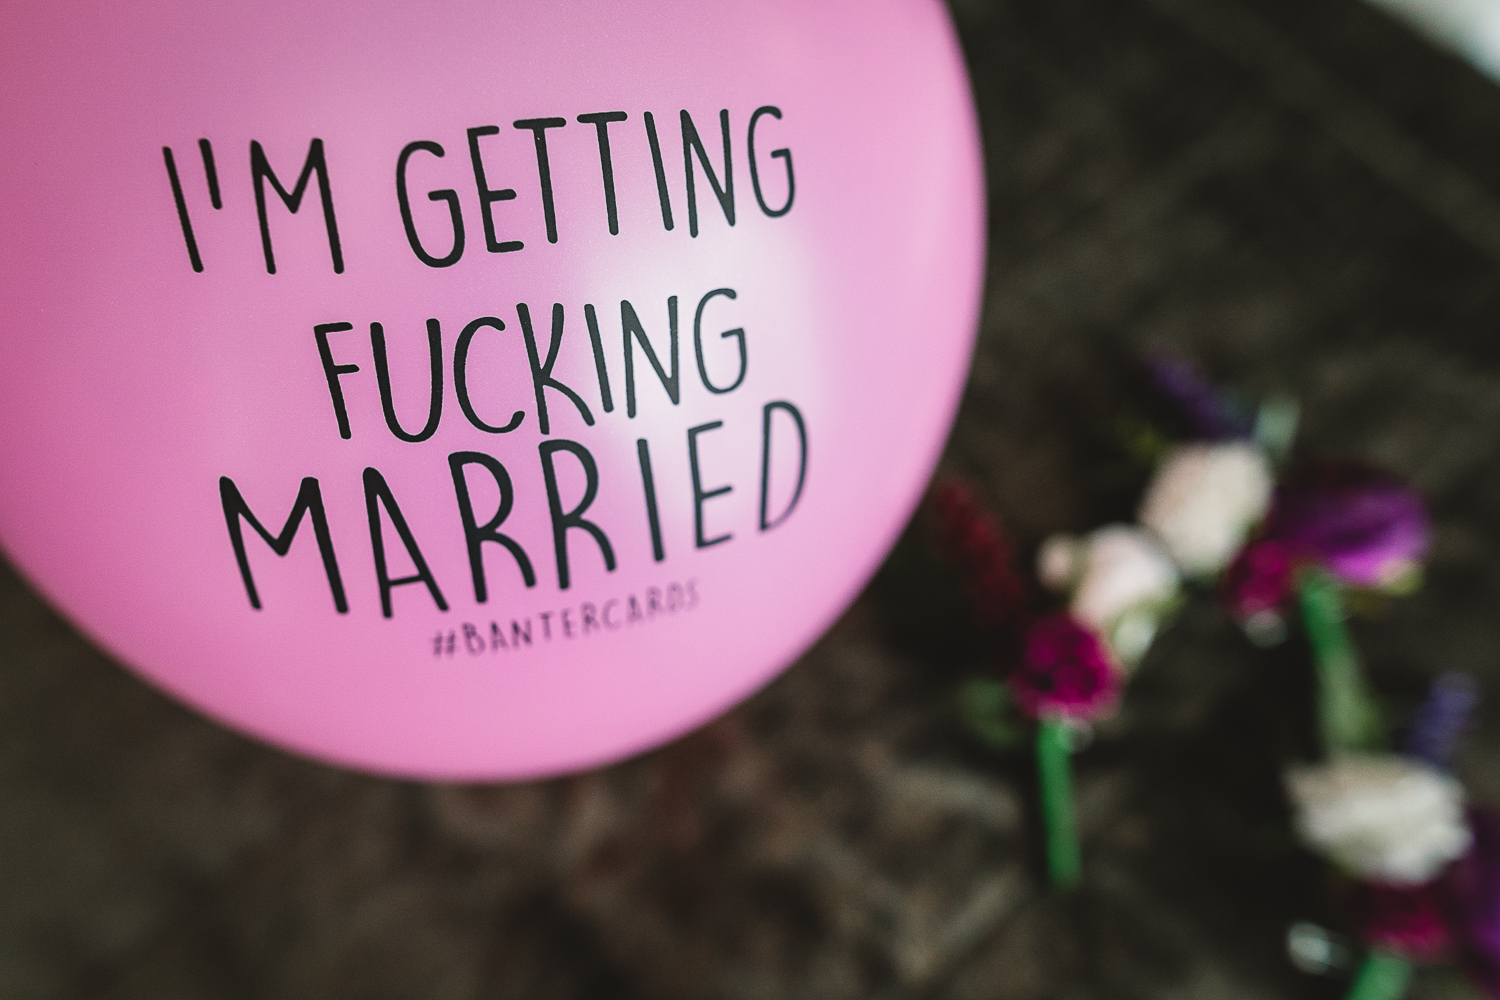 I'm getting fucking married fun balloon-1.jpg